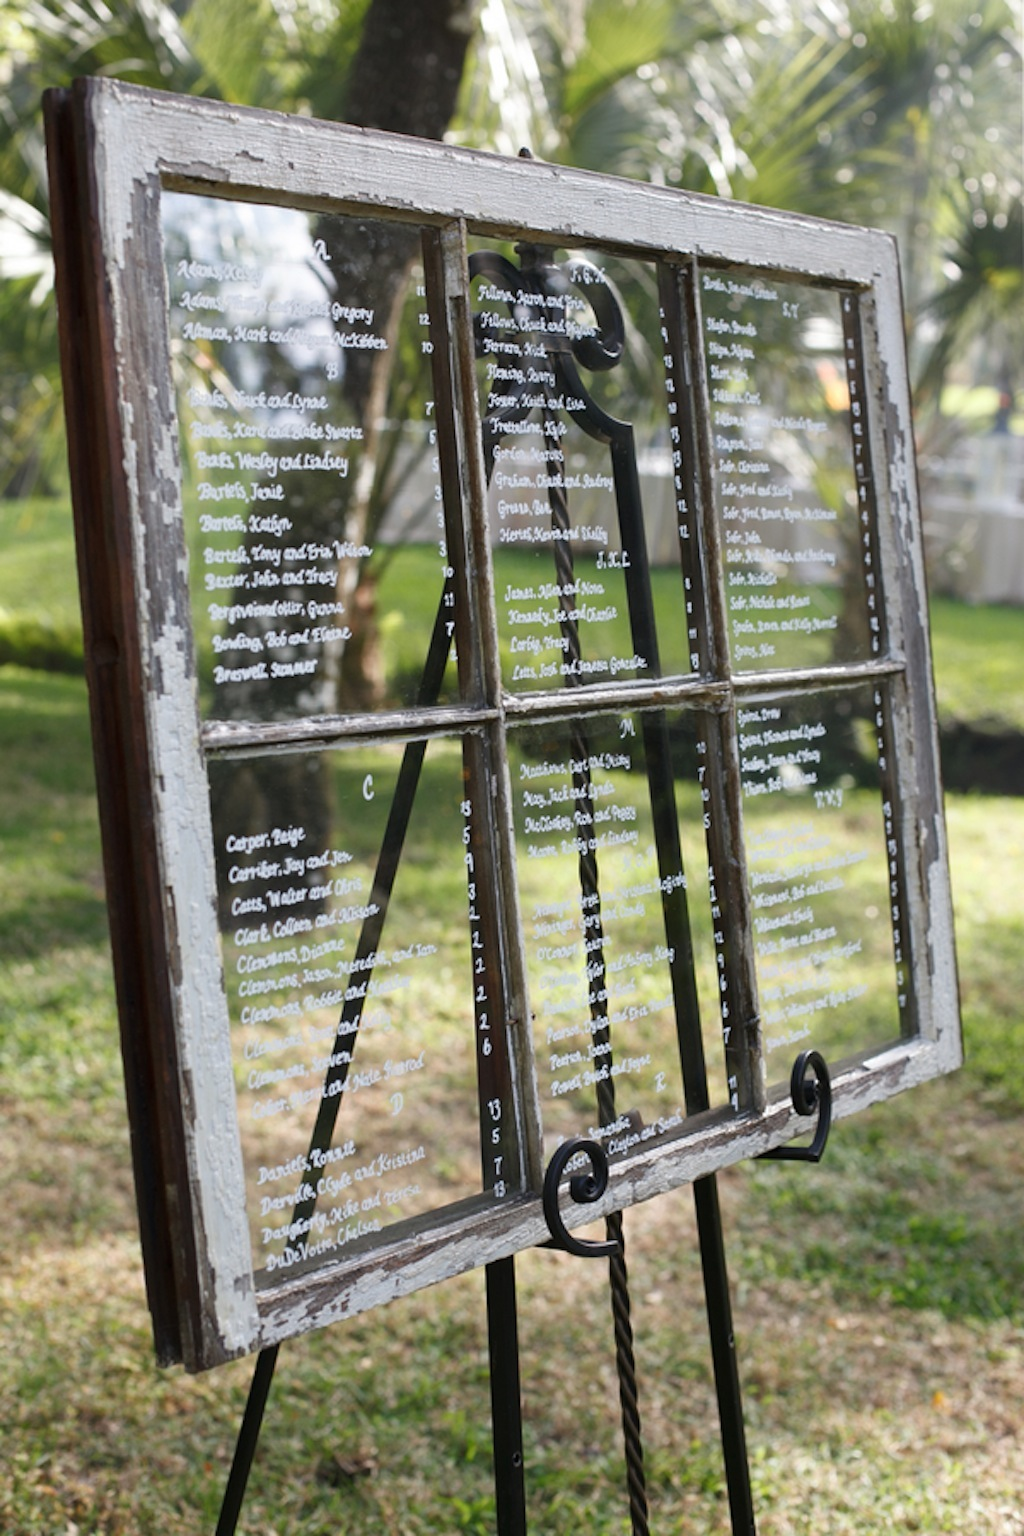 Vintage Window Pane Seating Chart Wedding Decor Marry Me Tampa Bay Local Real Wedding Inspiration Vendor Recommendation Reviews